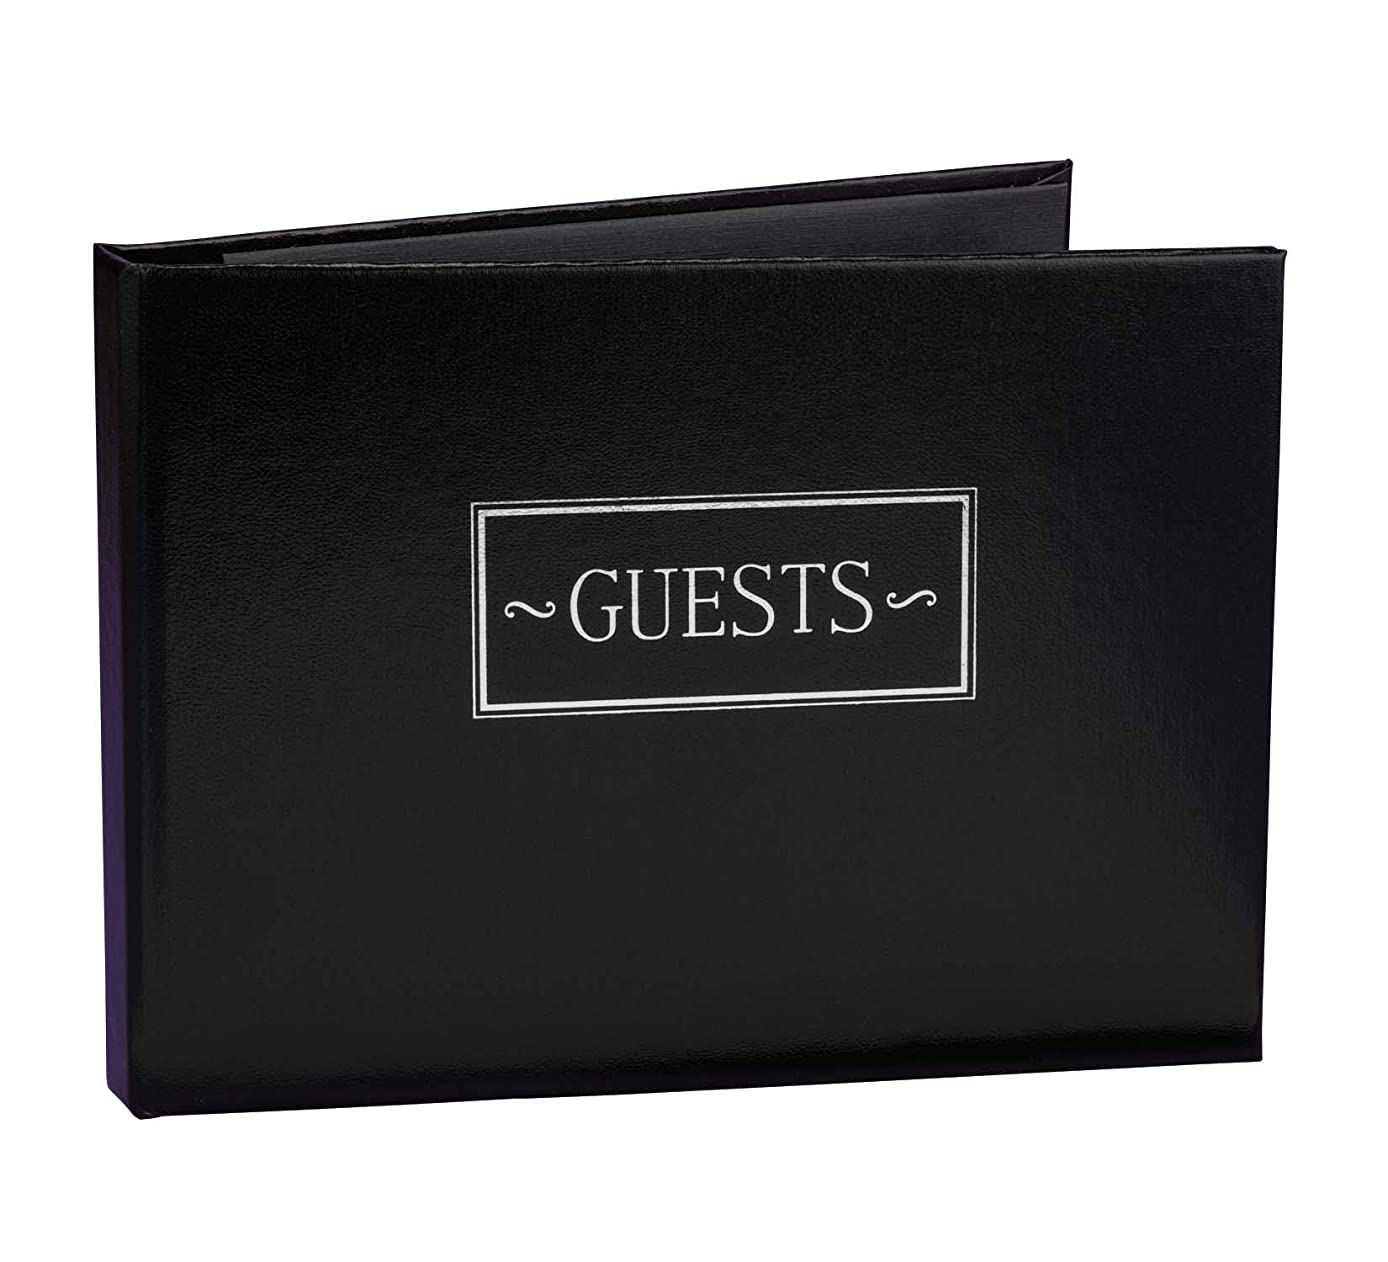 Hortense B. Hewitt Wedding Accessories All Occasion Guest Book, Black, 7.5-Inches x 5.75-Inches